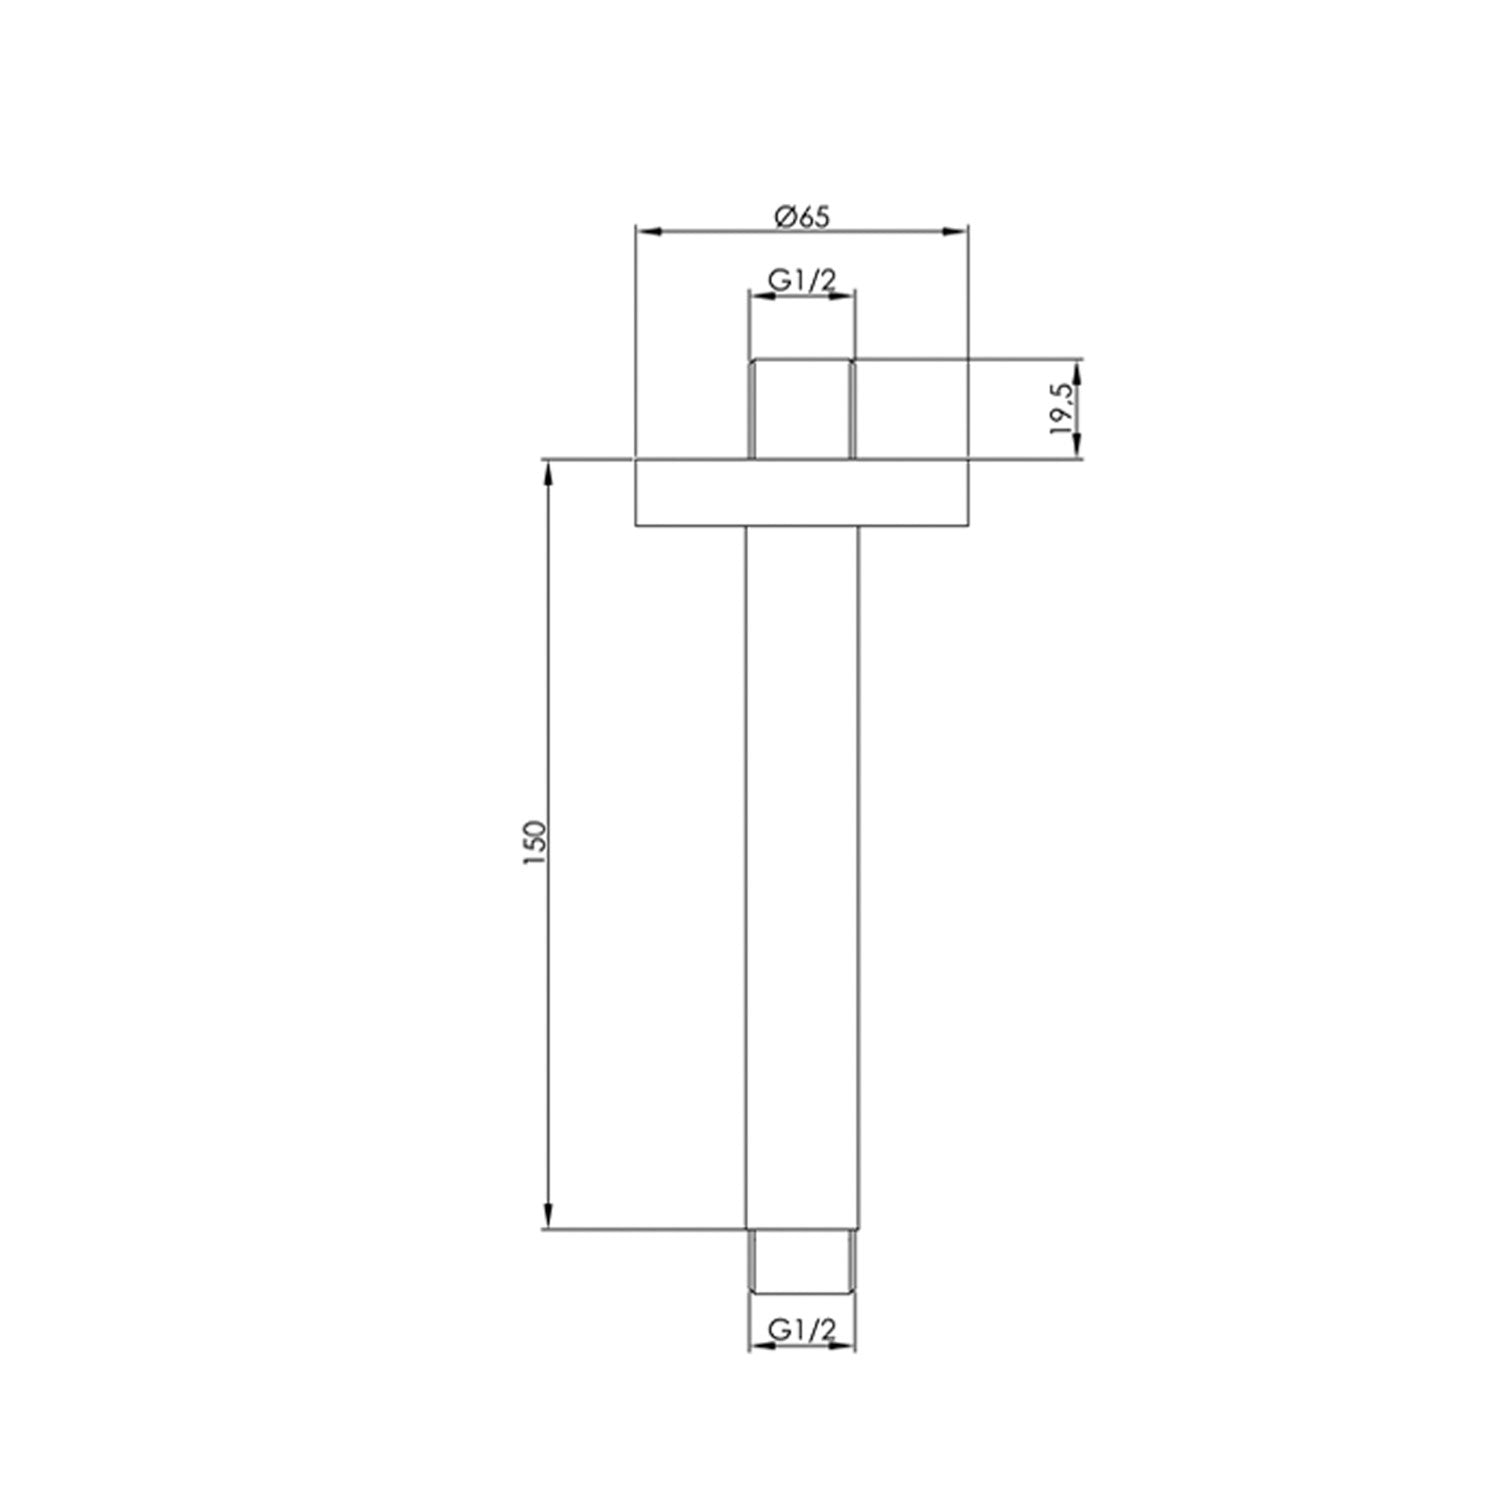 150mm ceiling mounted Libero Shower Arm with a brushed brass finish dimensional drawing